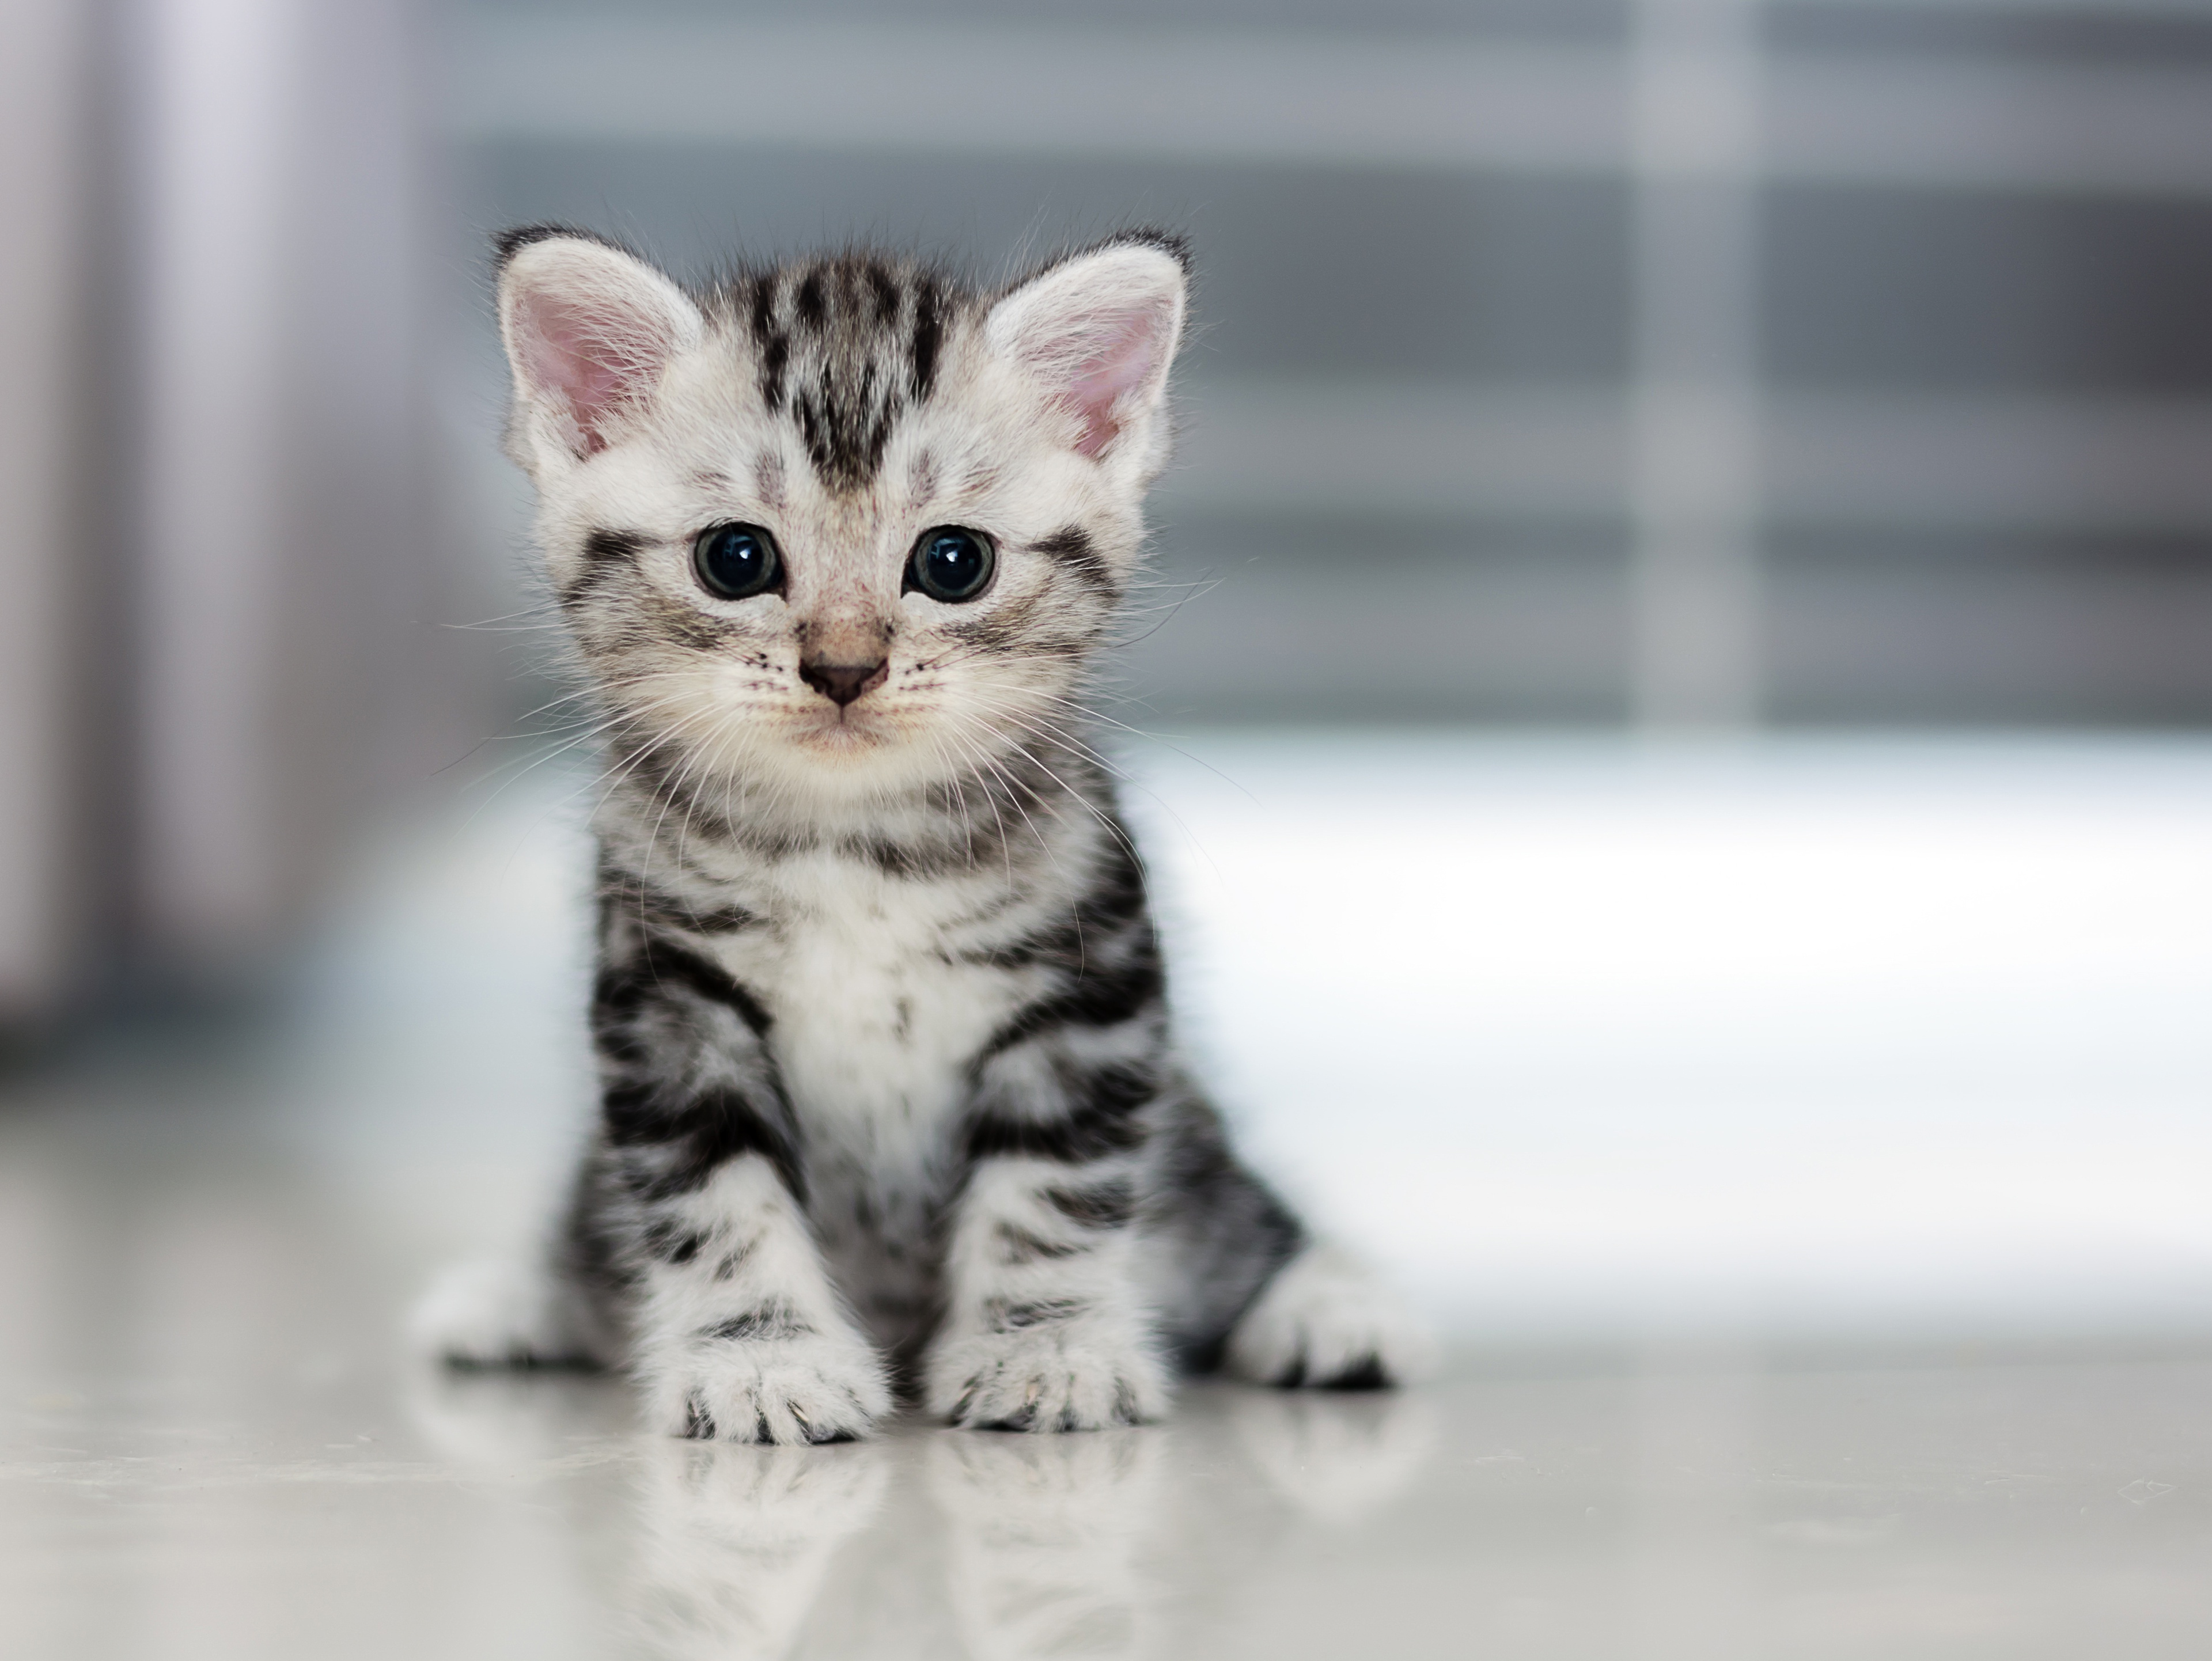 Small Kitten, HD Animals, 4k Wallpapers, Images, Backgrounds, Photos ...